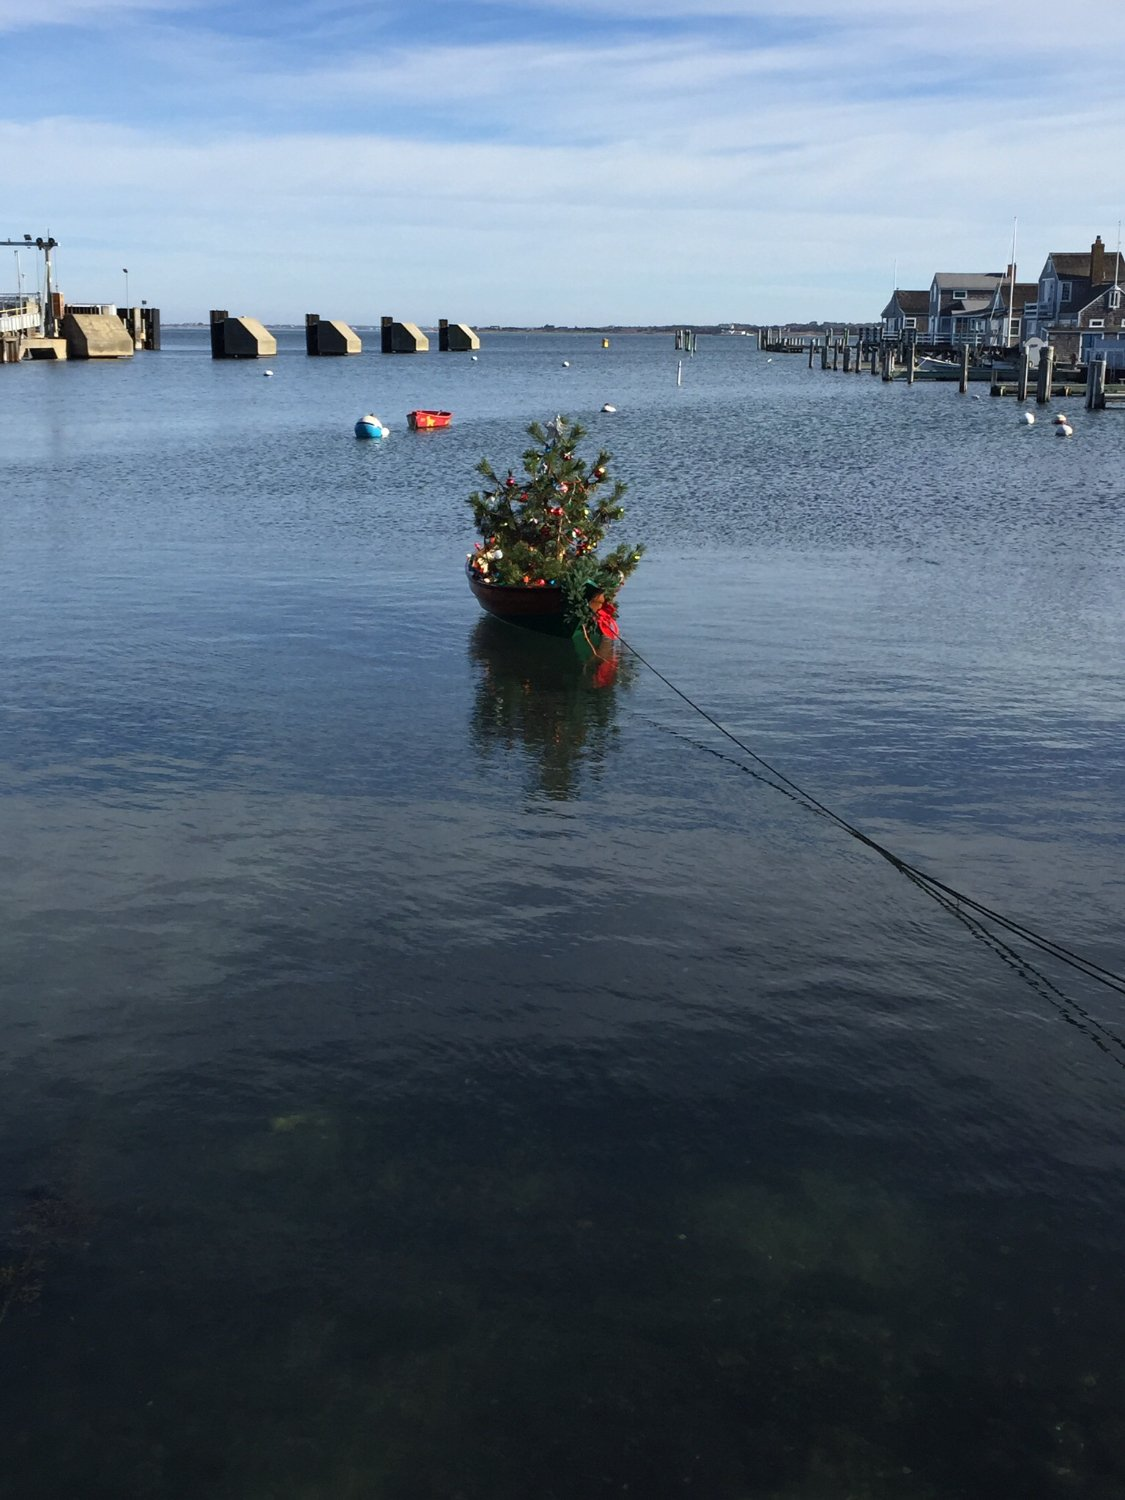 The famous little row boat adorned in its holiday attire